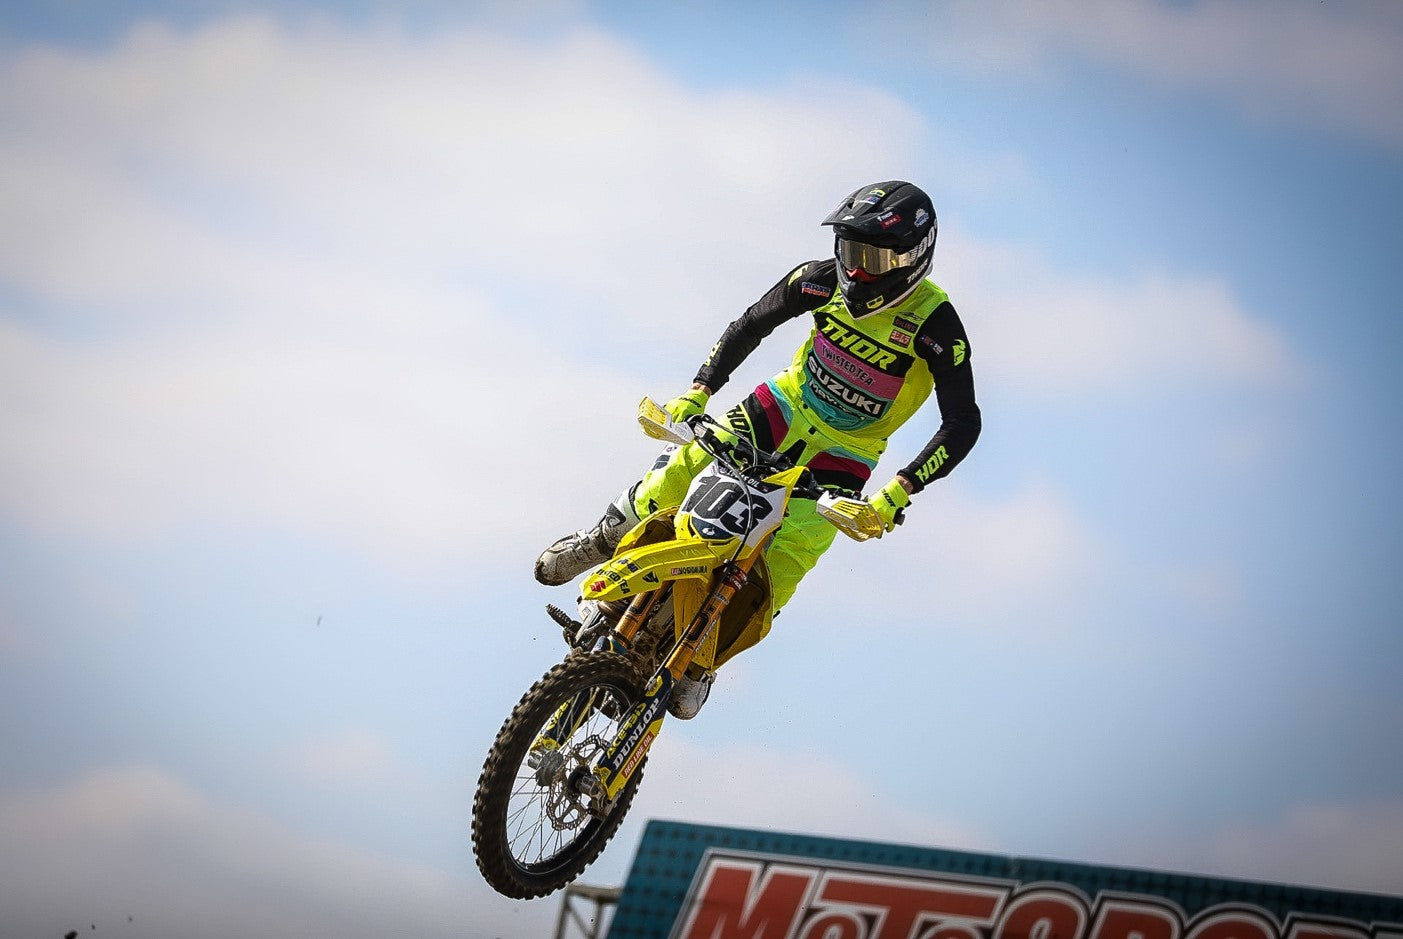 Max Anstie (#103) has a strong Moto#2 with 6th place